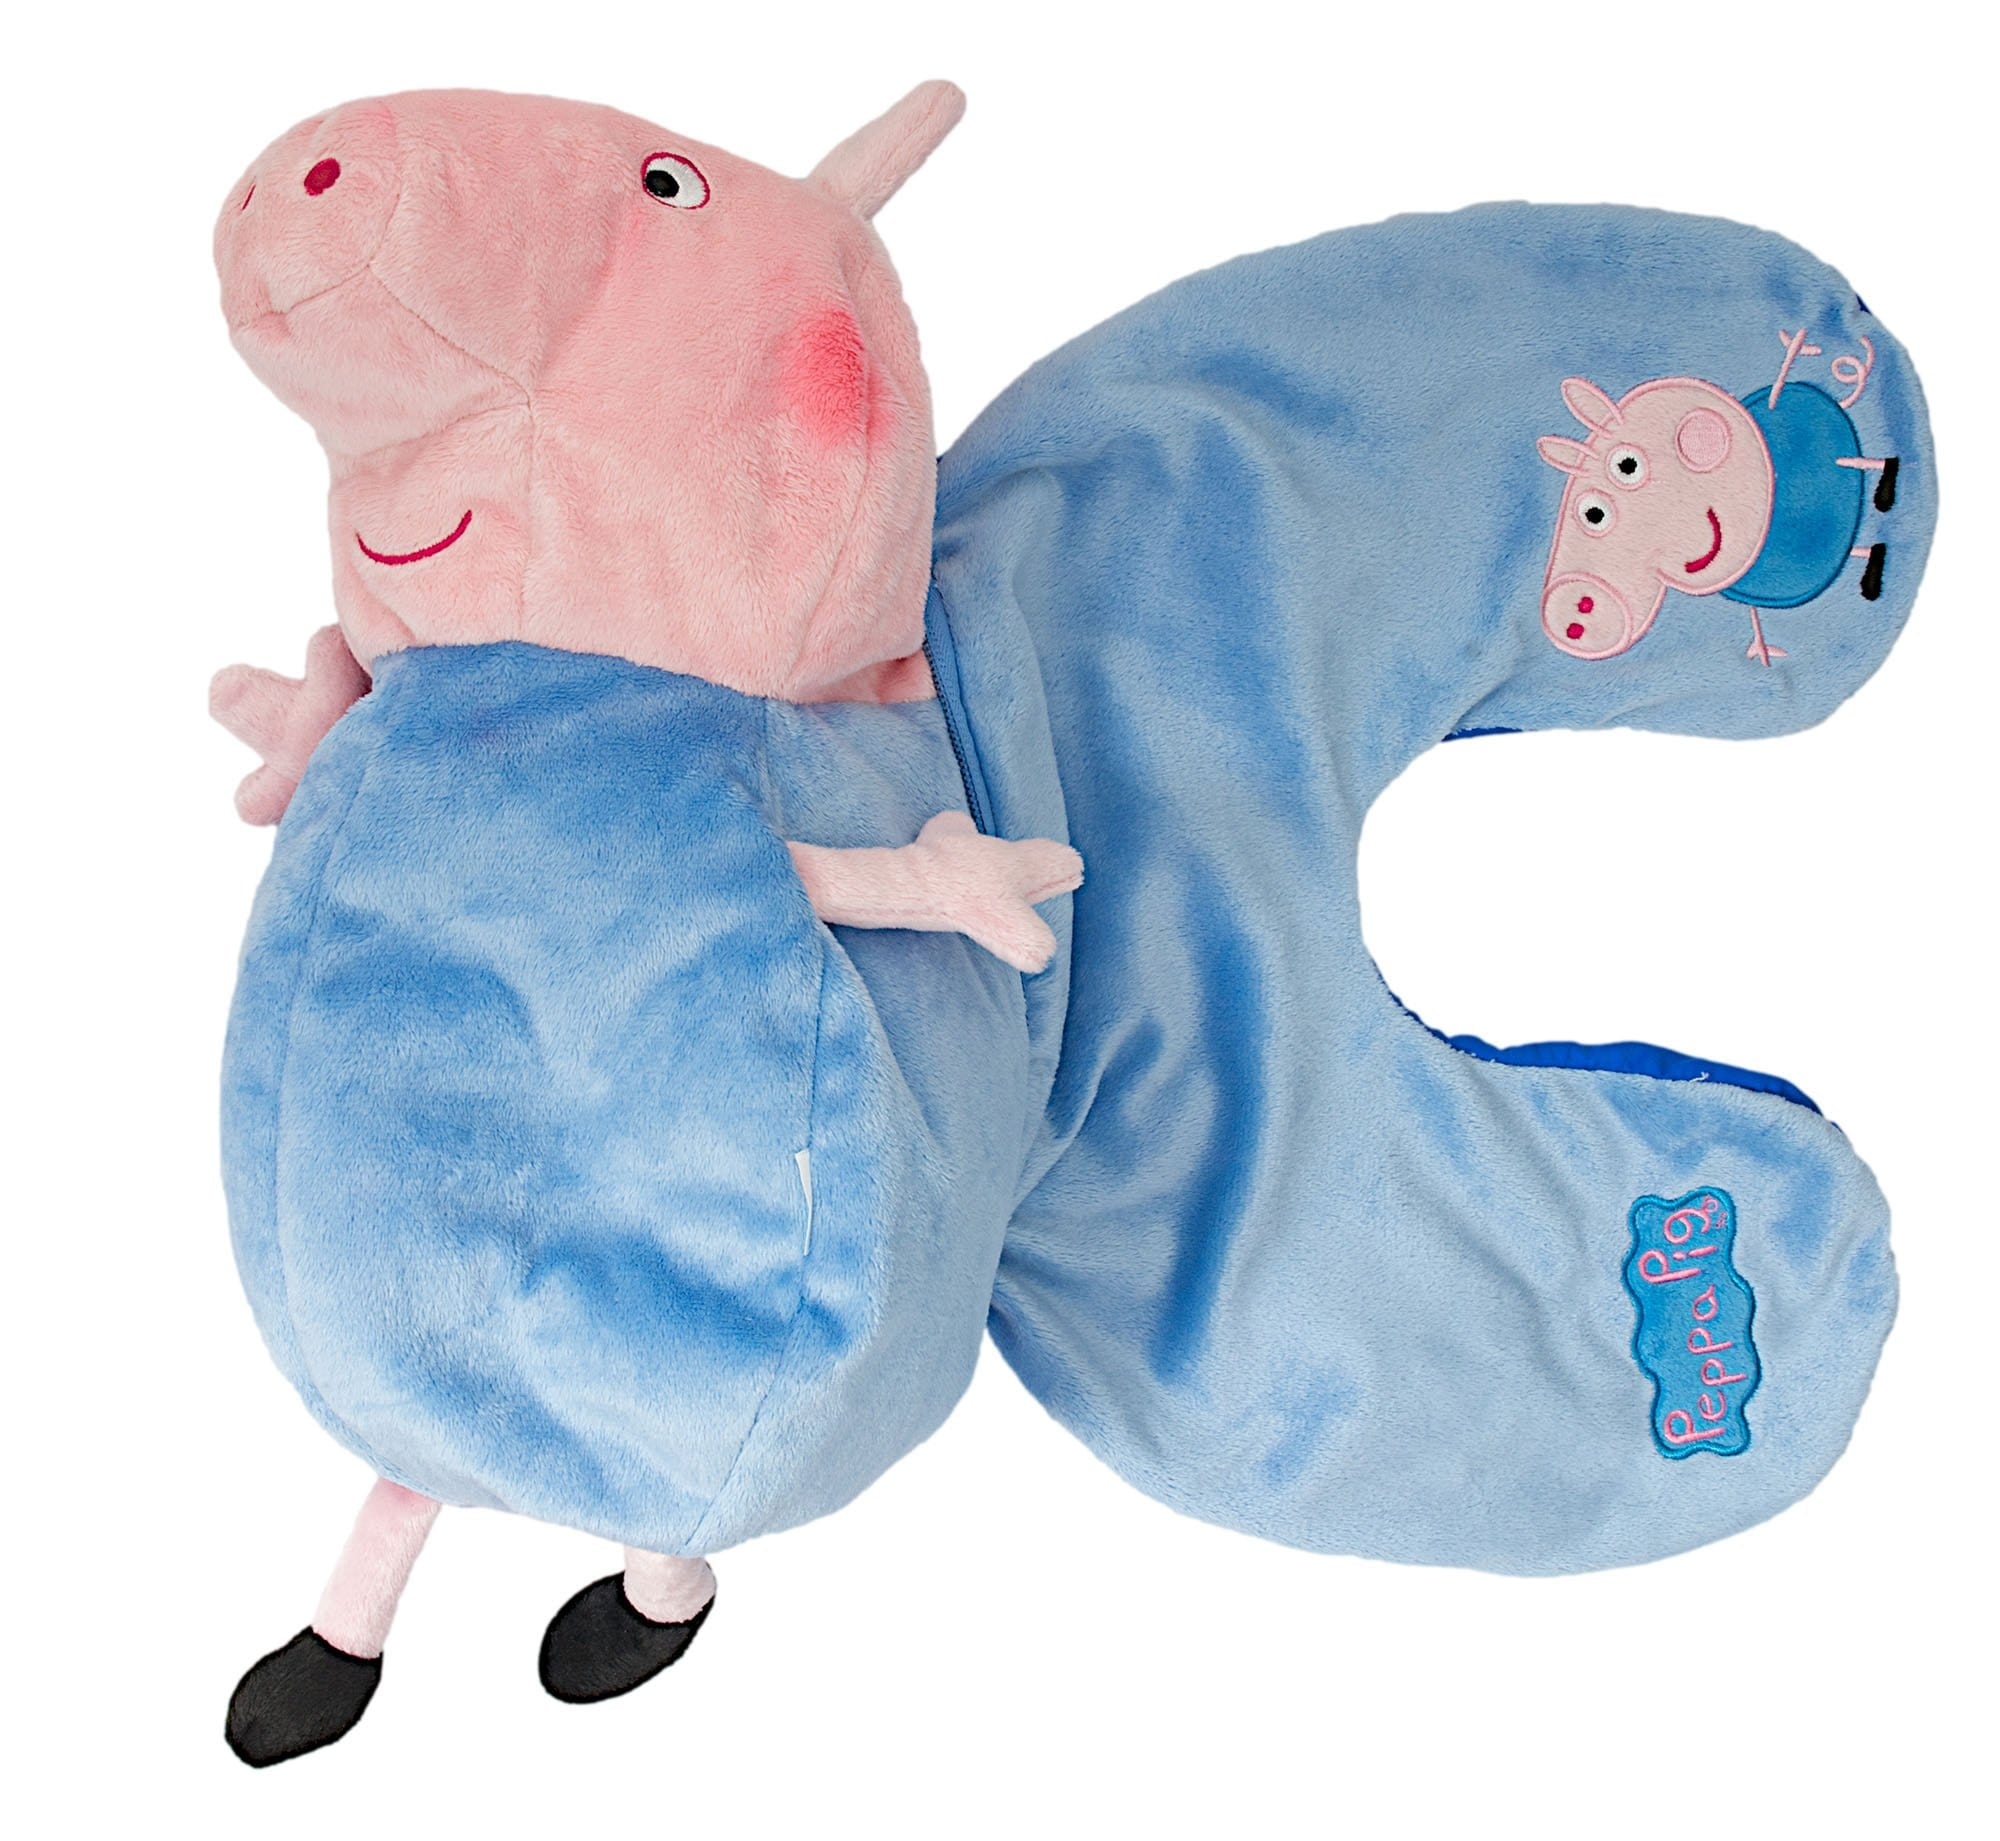 Peppa Pig George travel pillow toy in